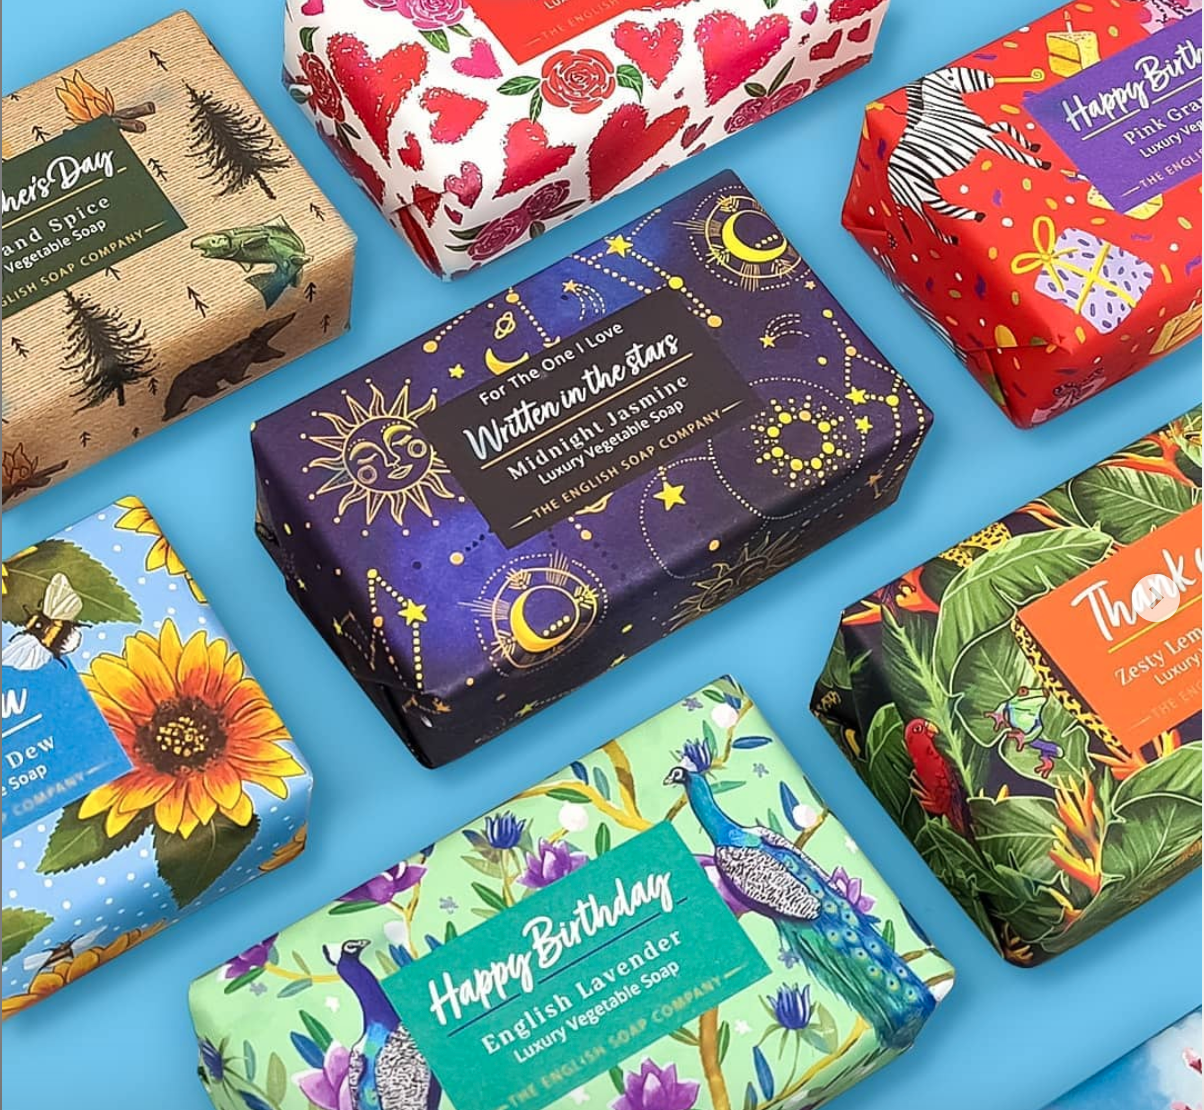 Above: The new occasions soap range from English Soap Company.